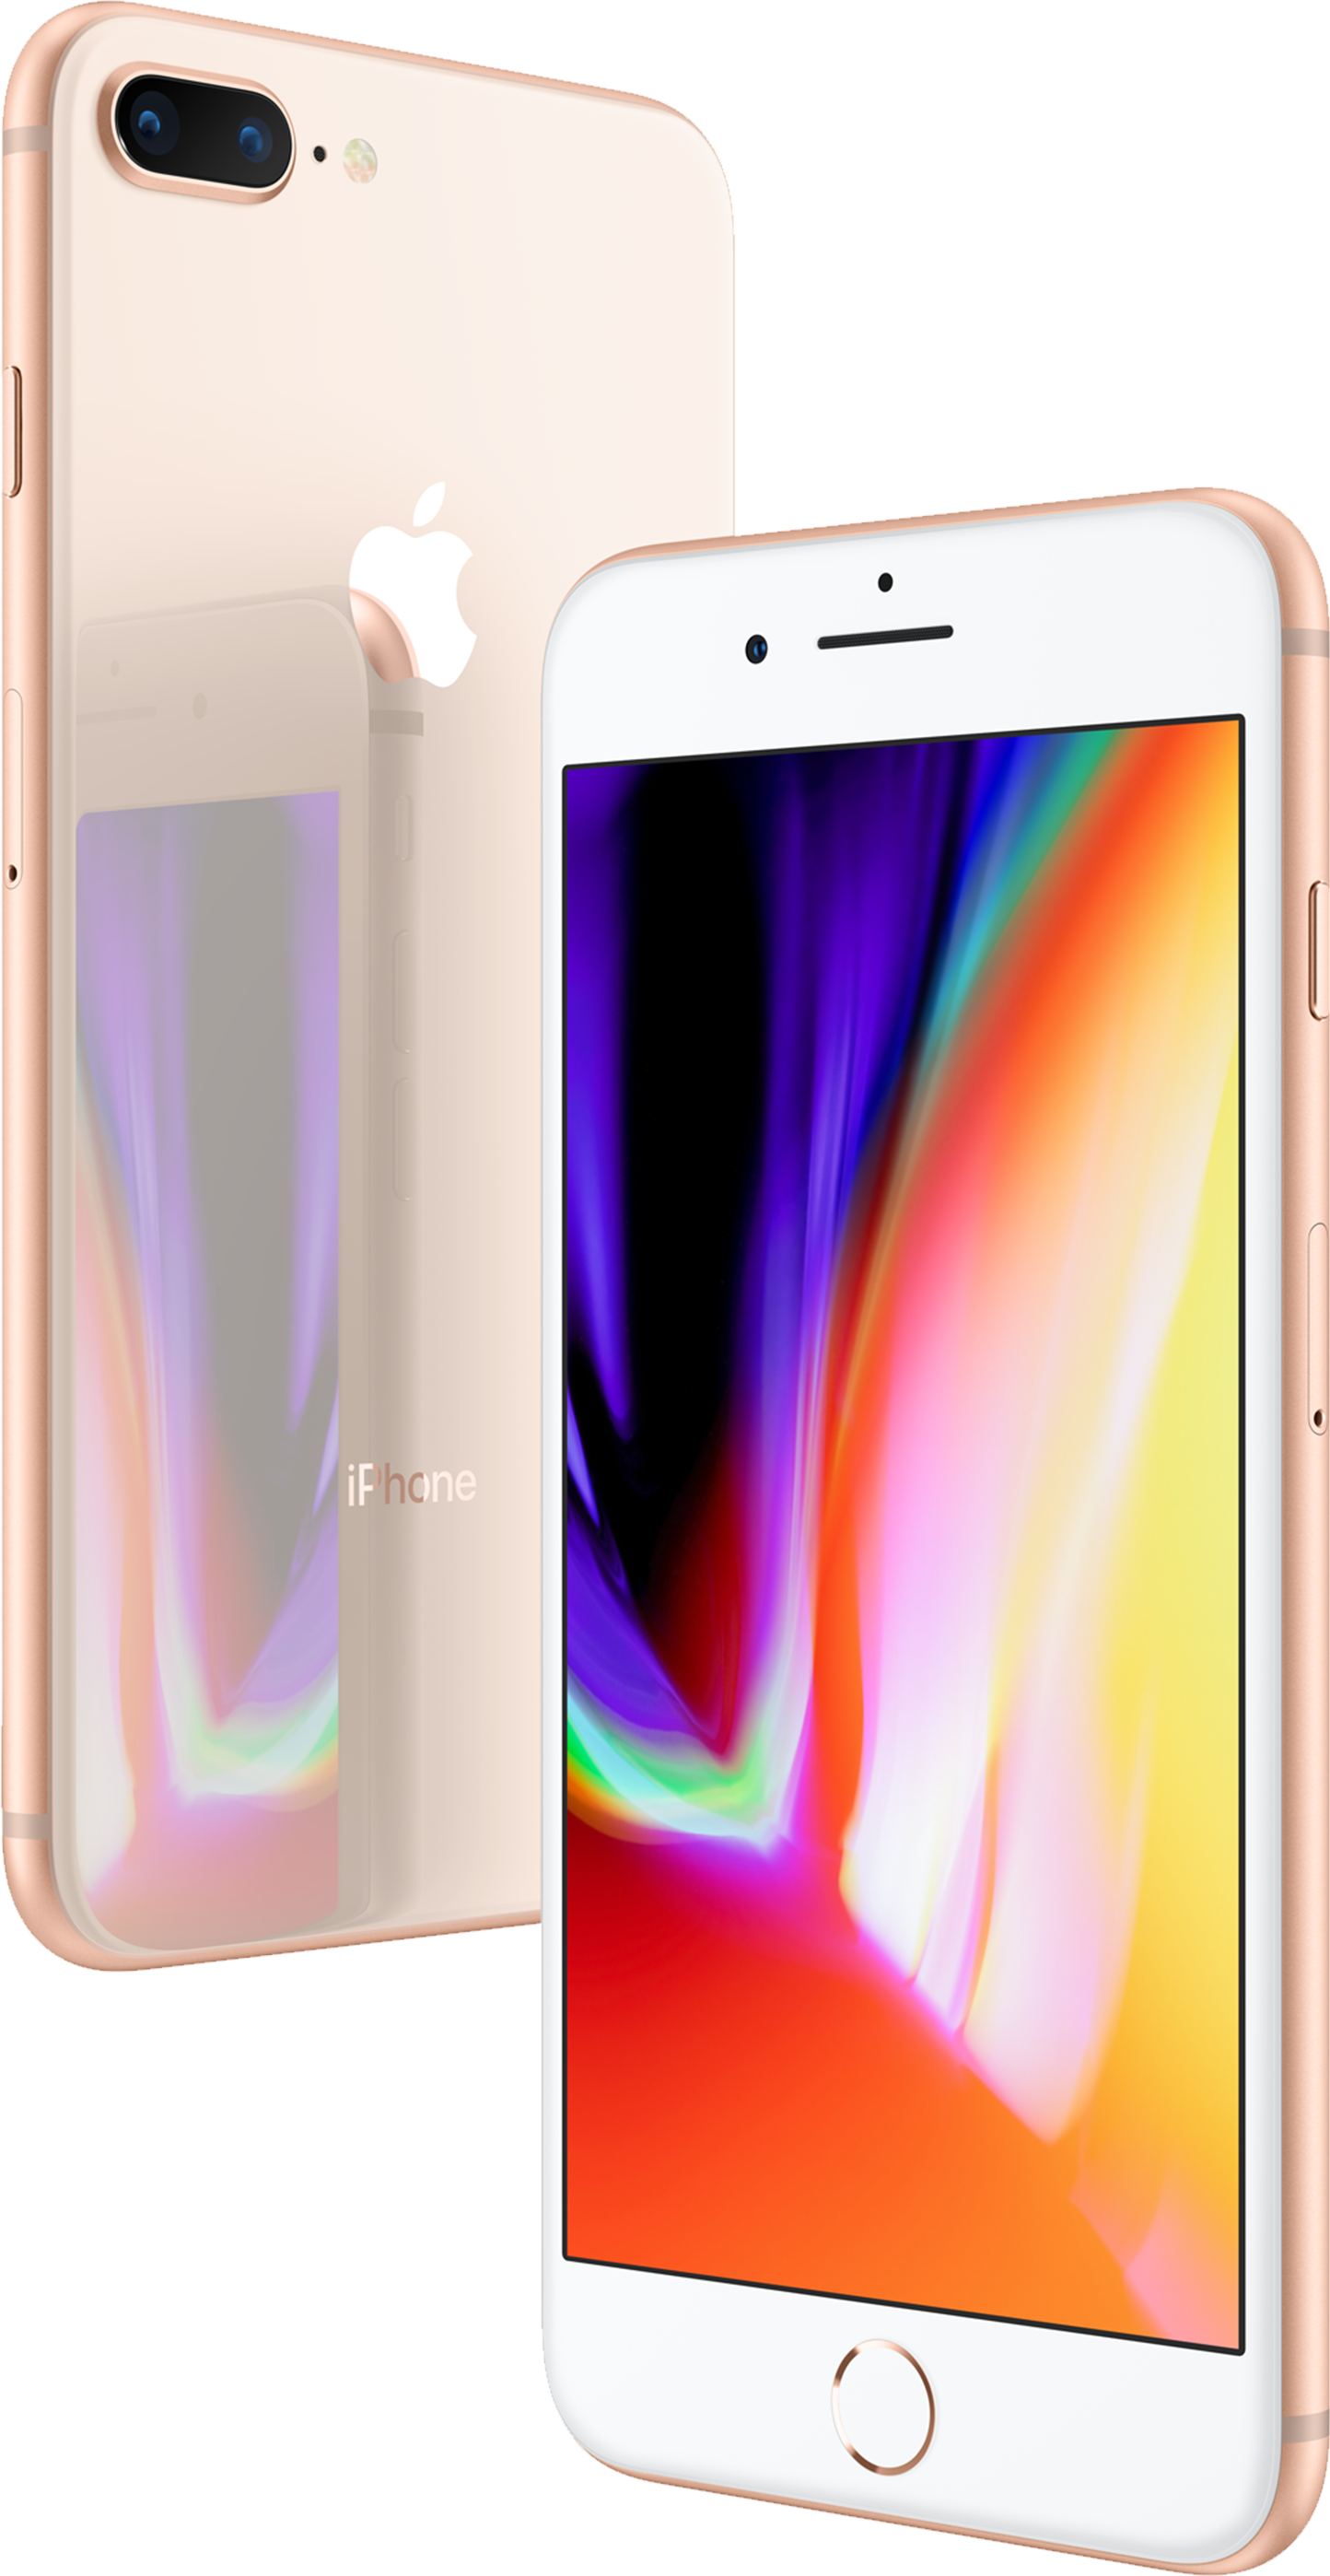 Apple Iphone 8 Plus Price Specs Reviews At T Iphone Apple Smartphone Apple Iphone